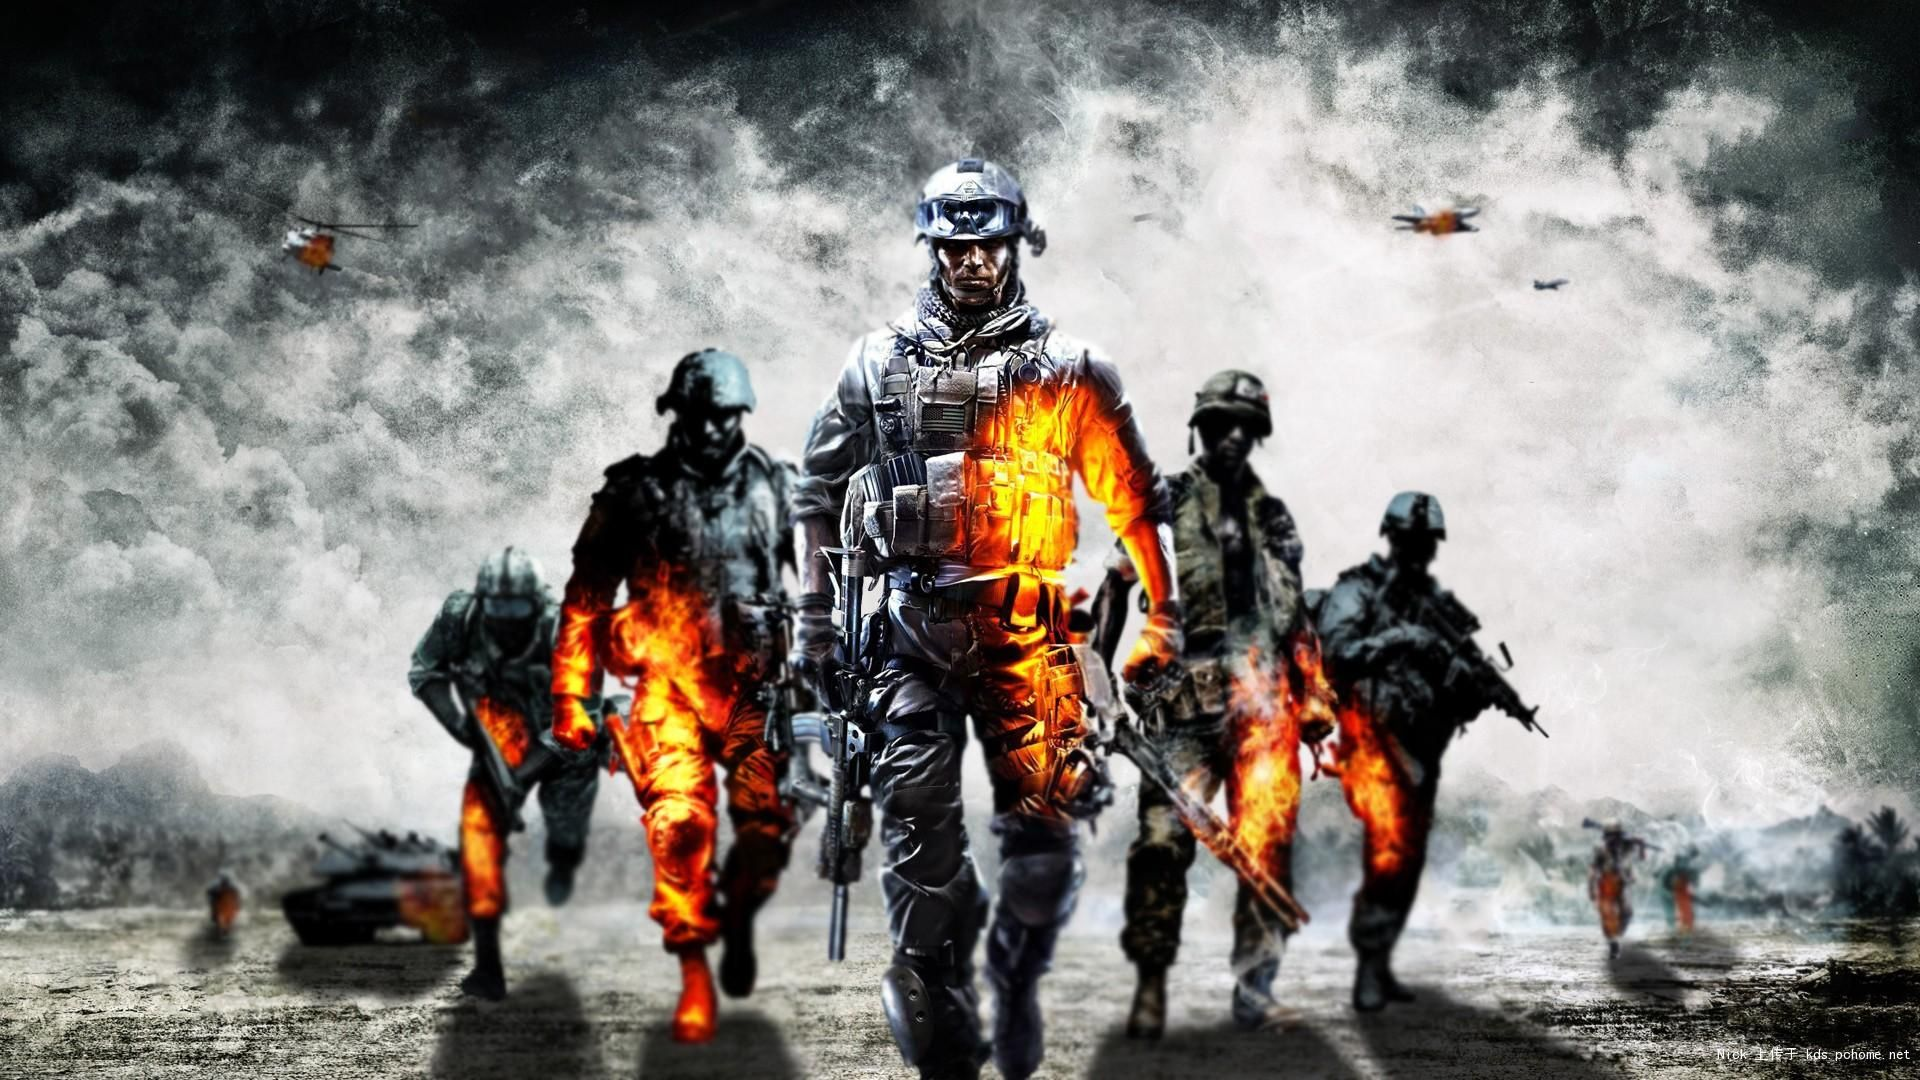 Pin By Masturo Wandes On Video Games Gaming Wallpapers Hd Gaming Wallpapers Battlefield